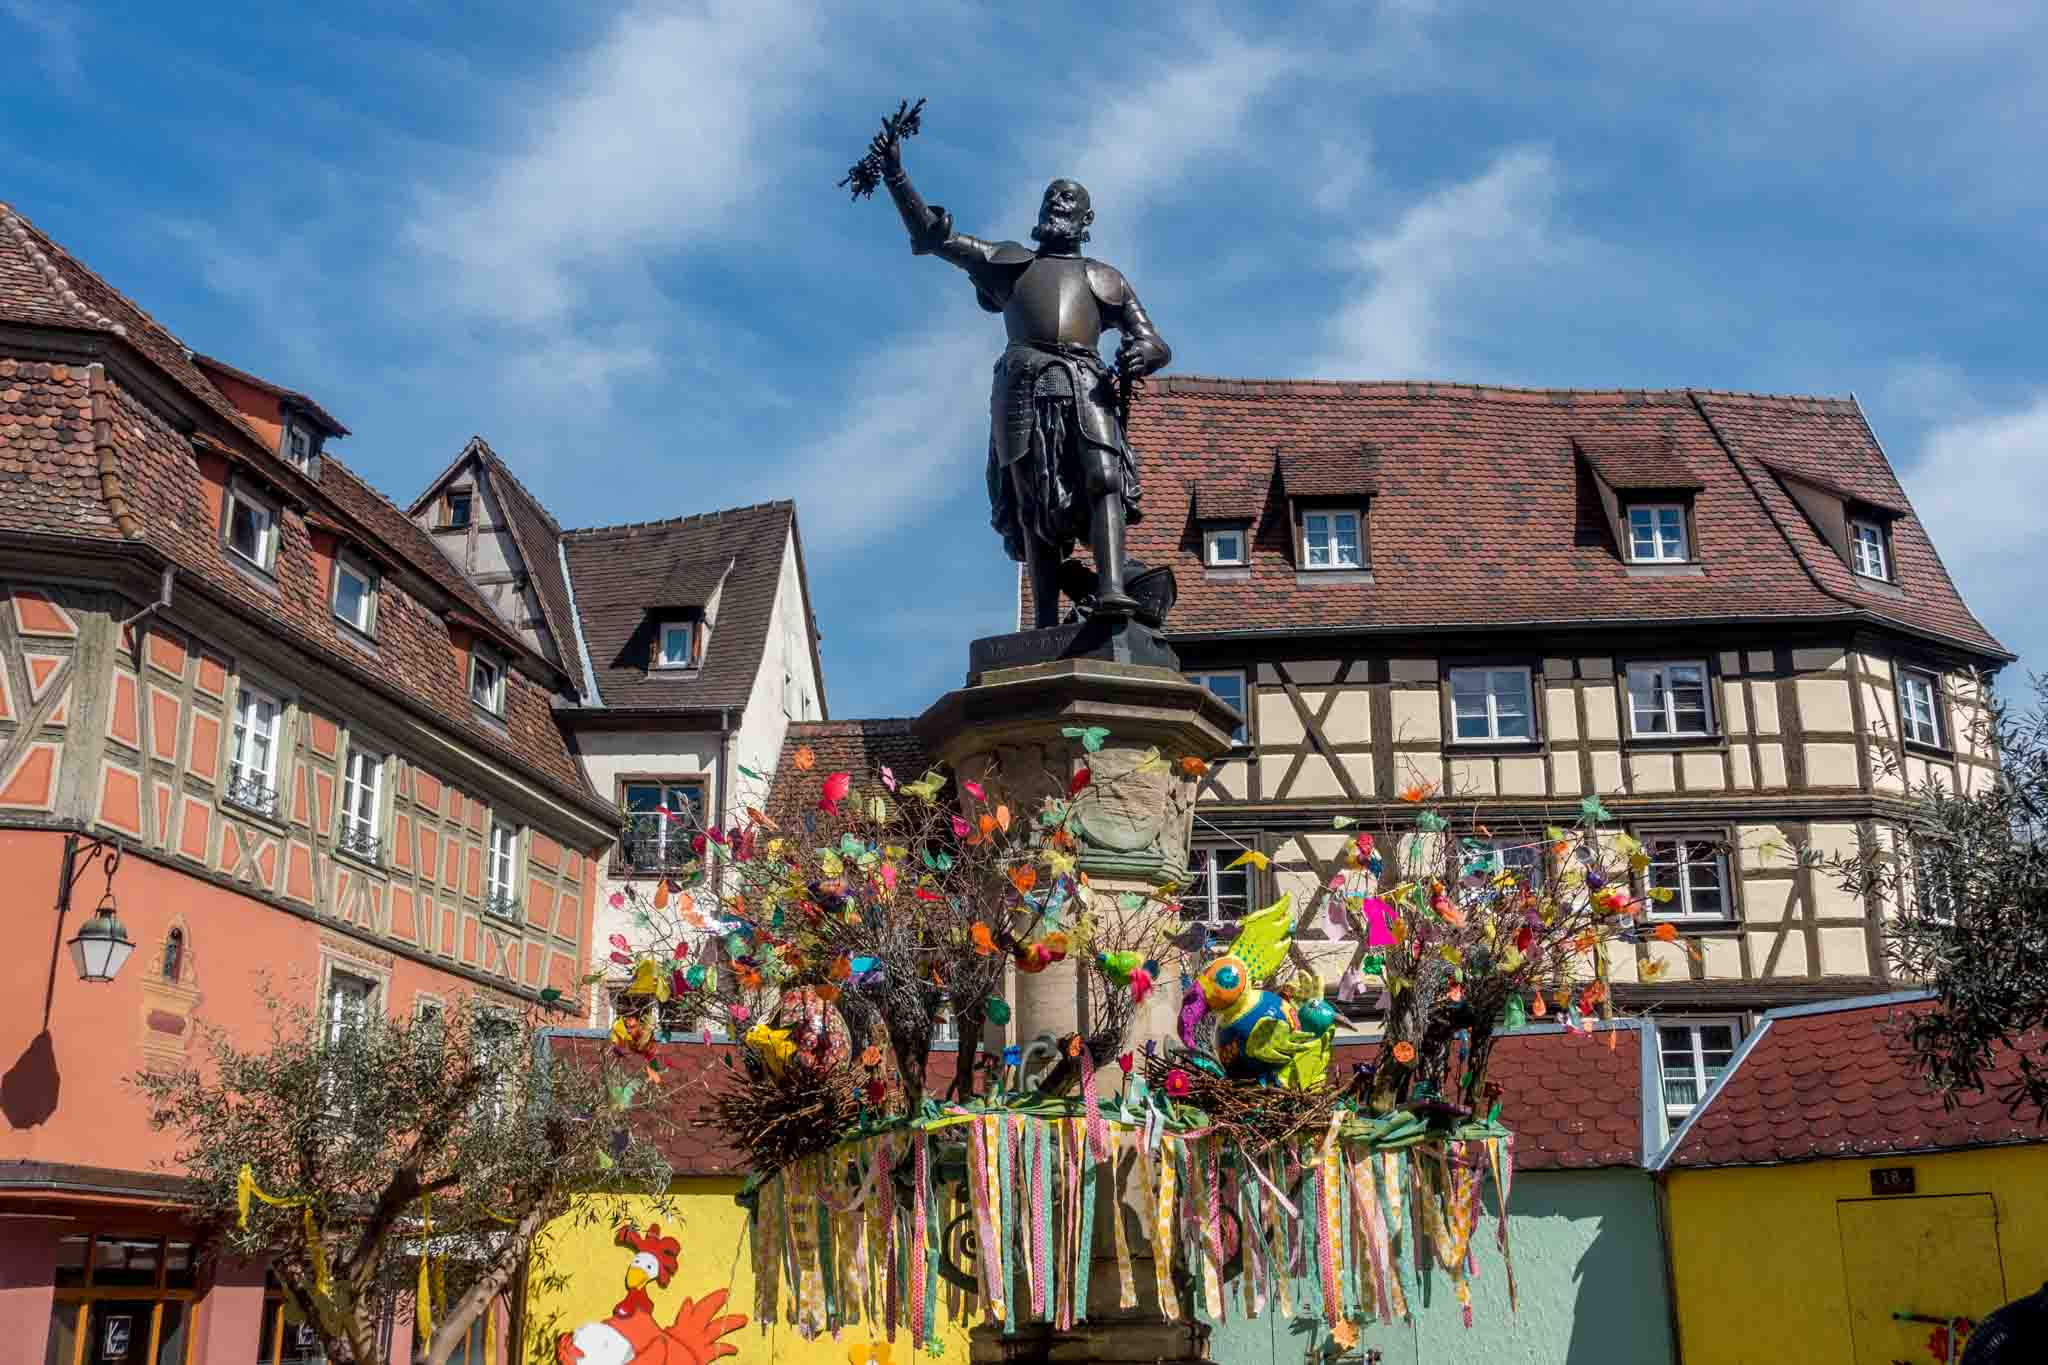 The Schwendi fountain in Colmar, France, decorated for Easter